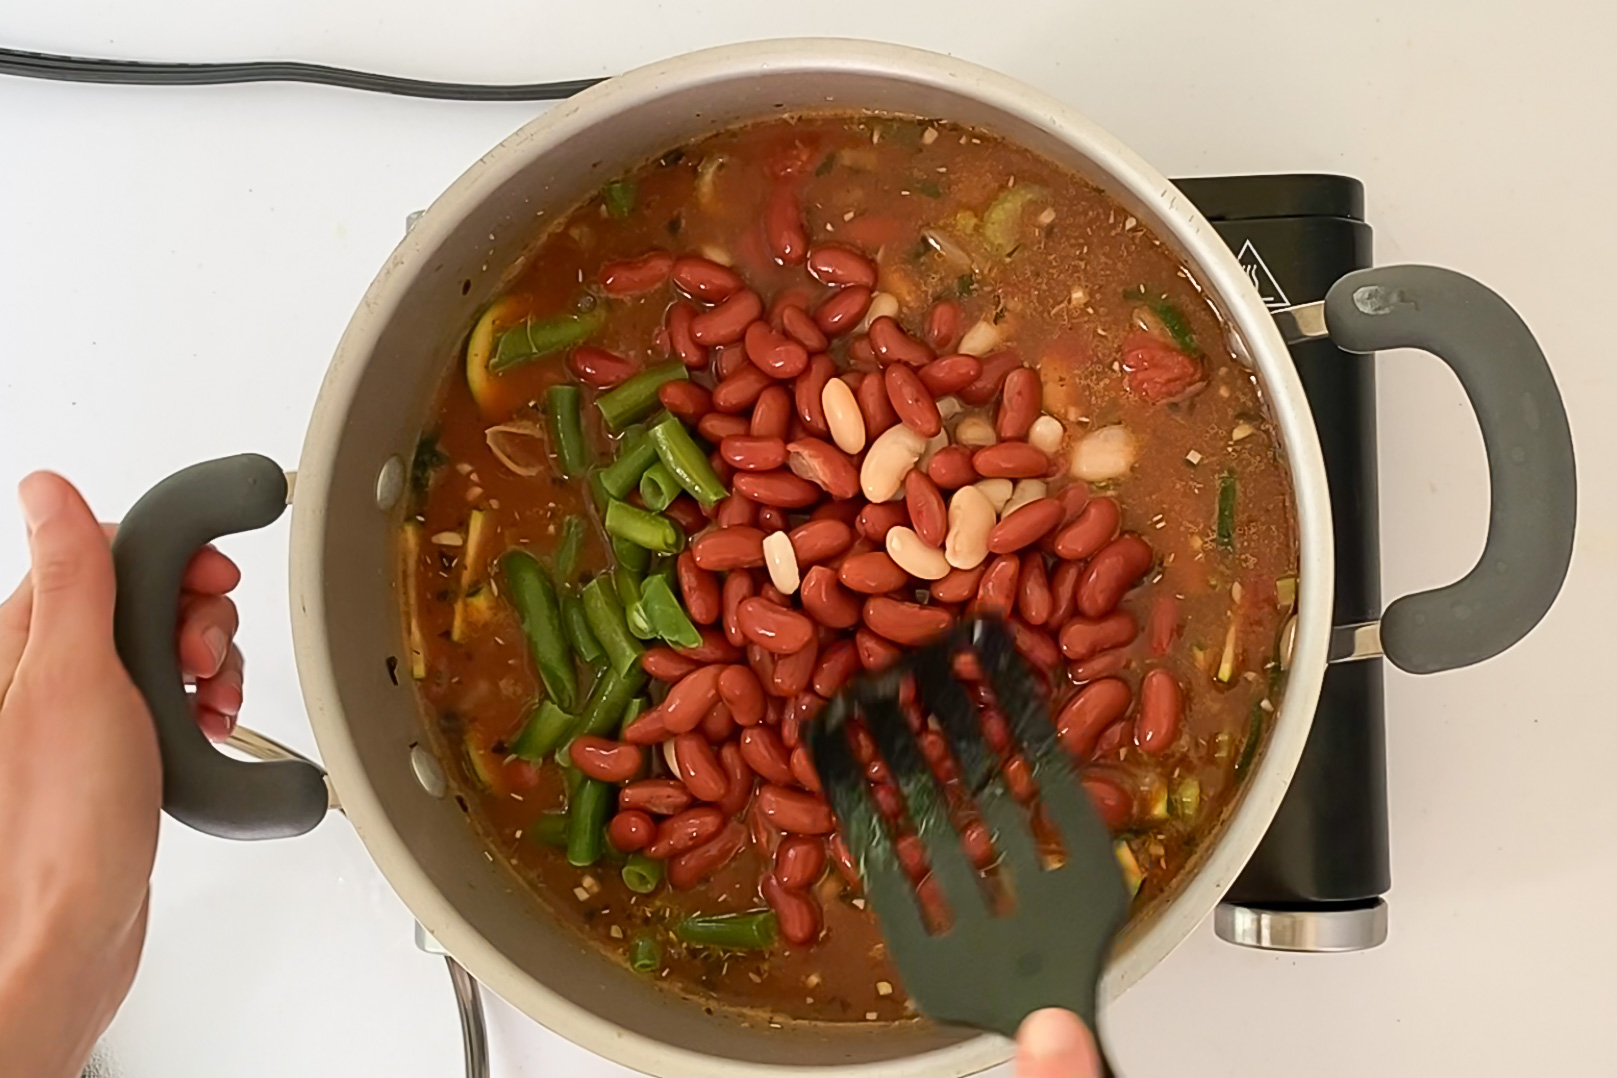 Overhead view of beans being added and stirred into the soup.